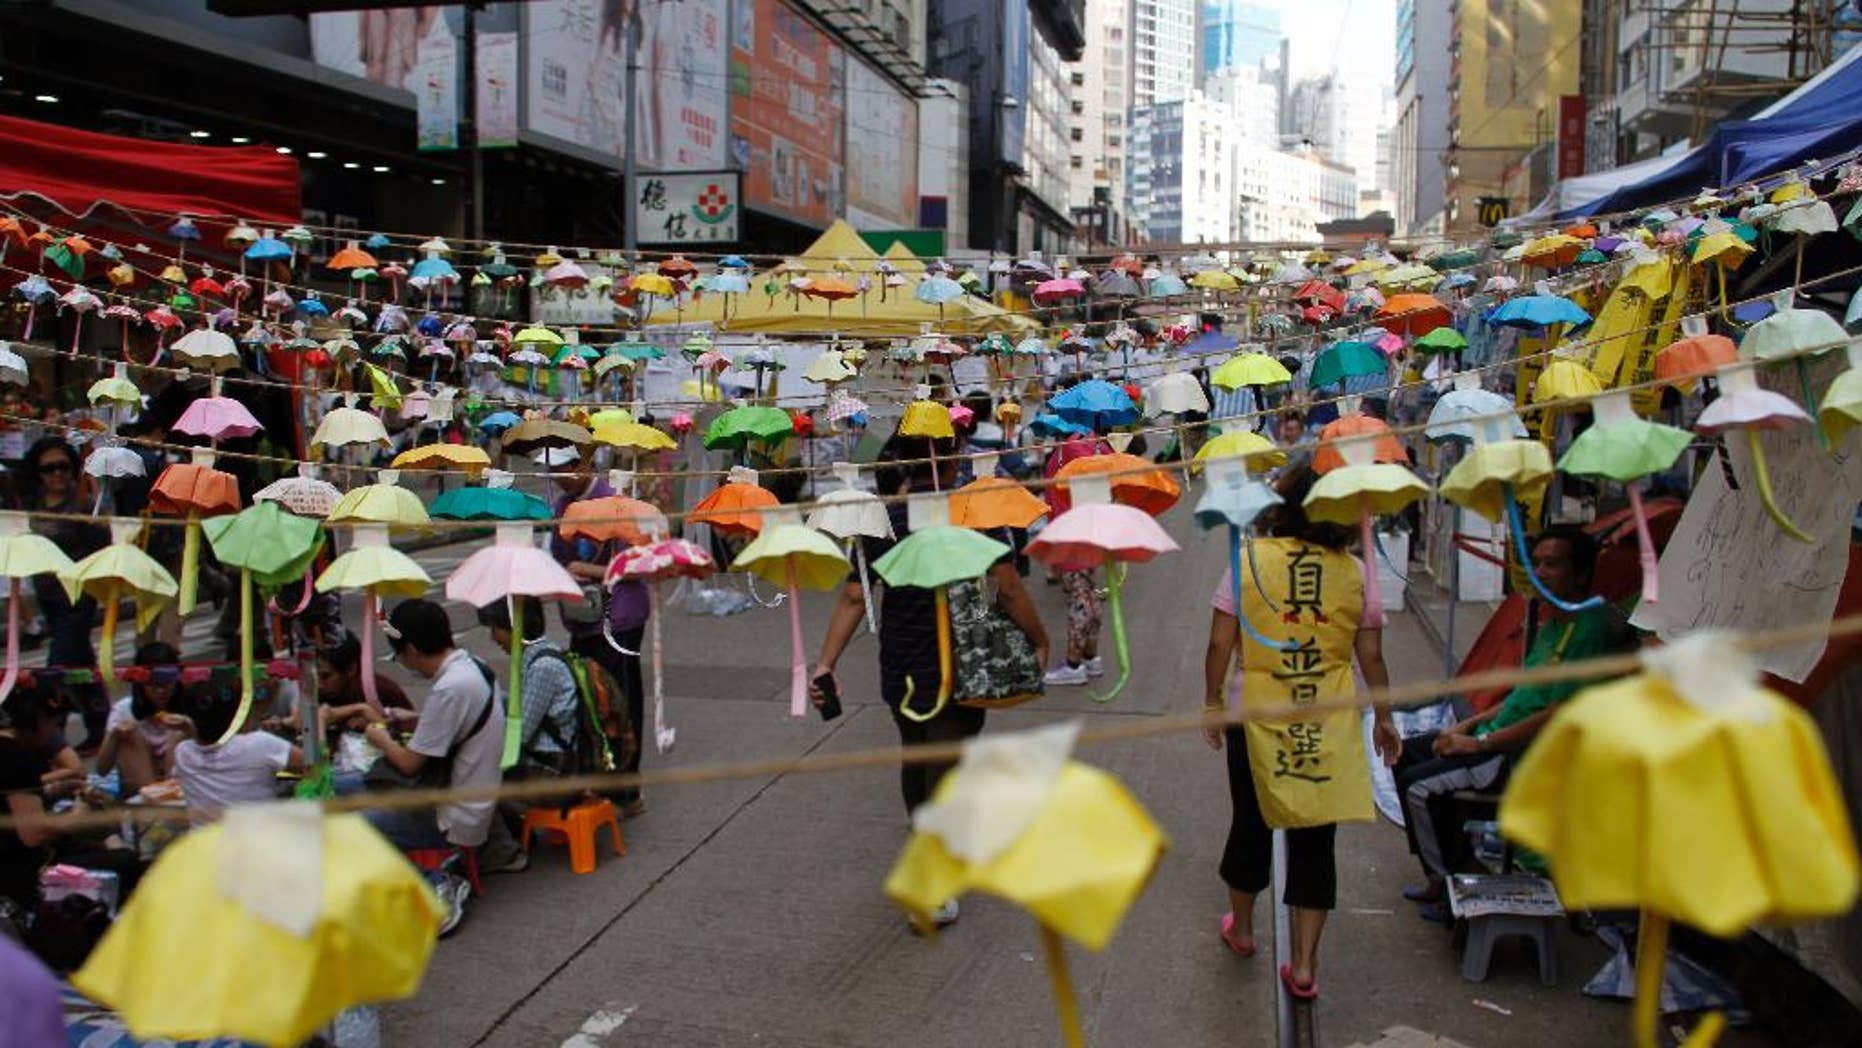 Protesters and people walk under hundreds of folded paper umbrellas at the occupied area in Causeway Bay, a shopping district of Hong Kong Thursday Oct. 30, 2014. Student democracy activists who have occupied Hong Kong streets for a month suggested Tuesday that direct negotiations with senior Chinese Communist Party officials could be a way to end their standoff with the local government. (AP Photo/Koji Ueda)